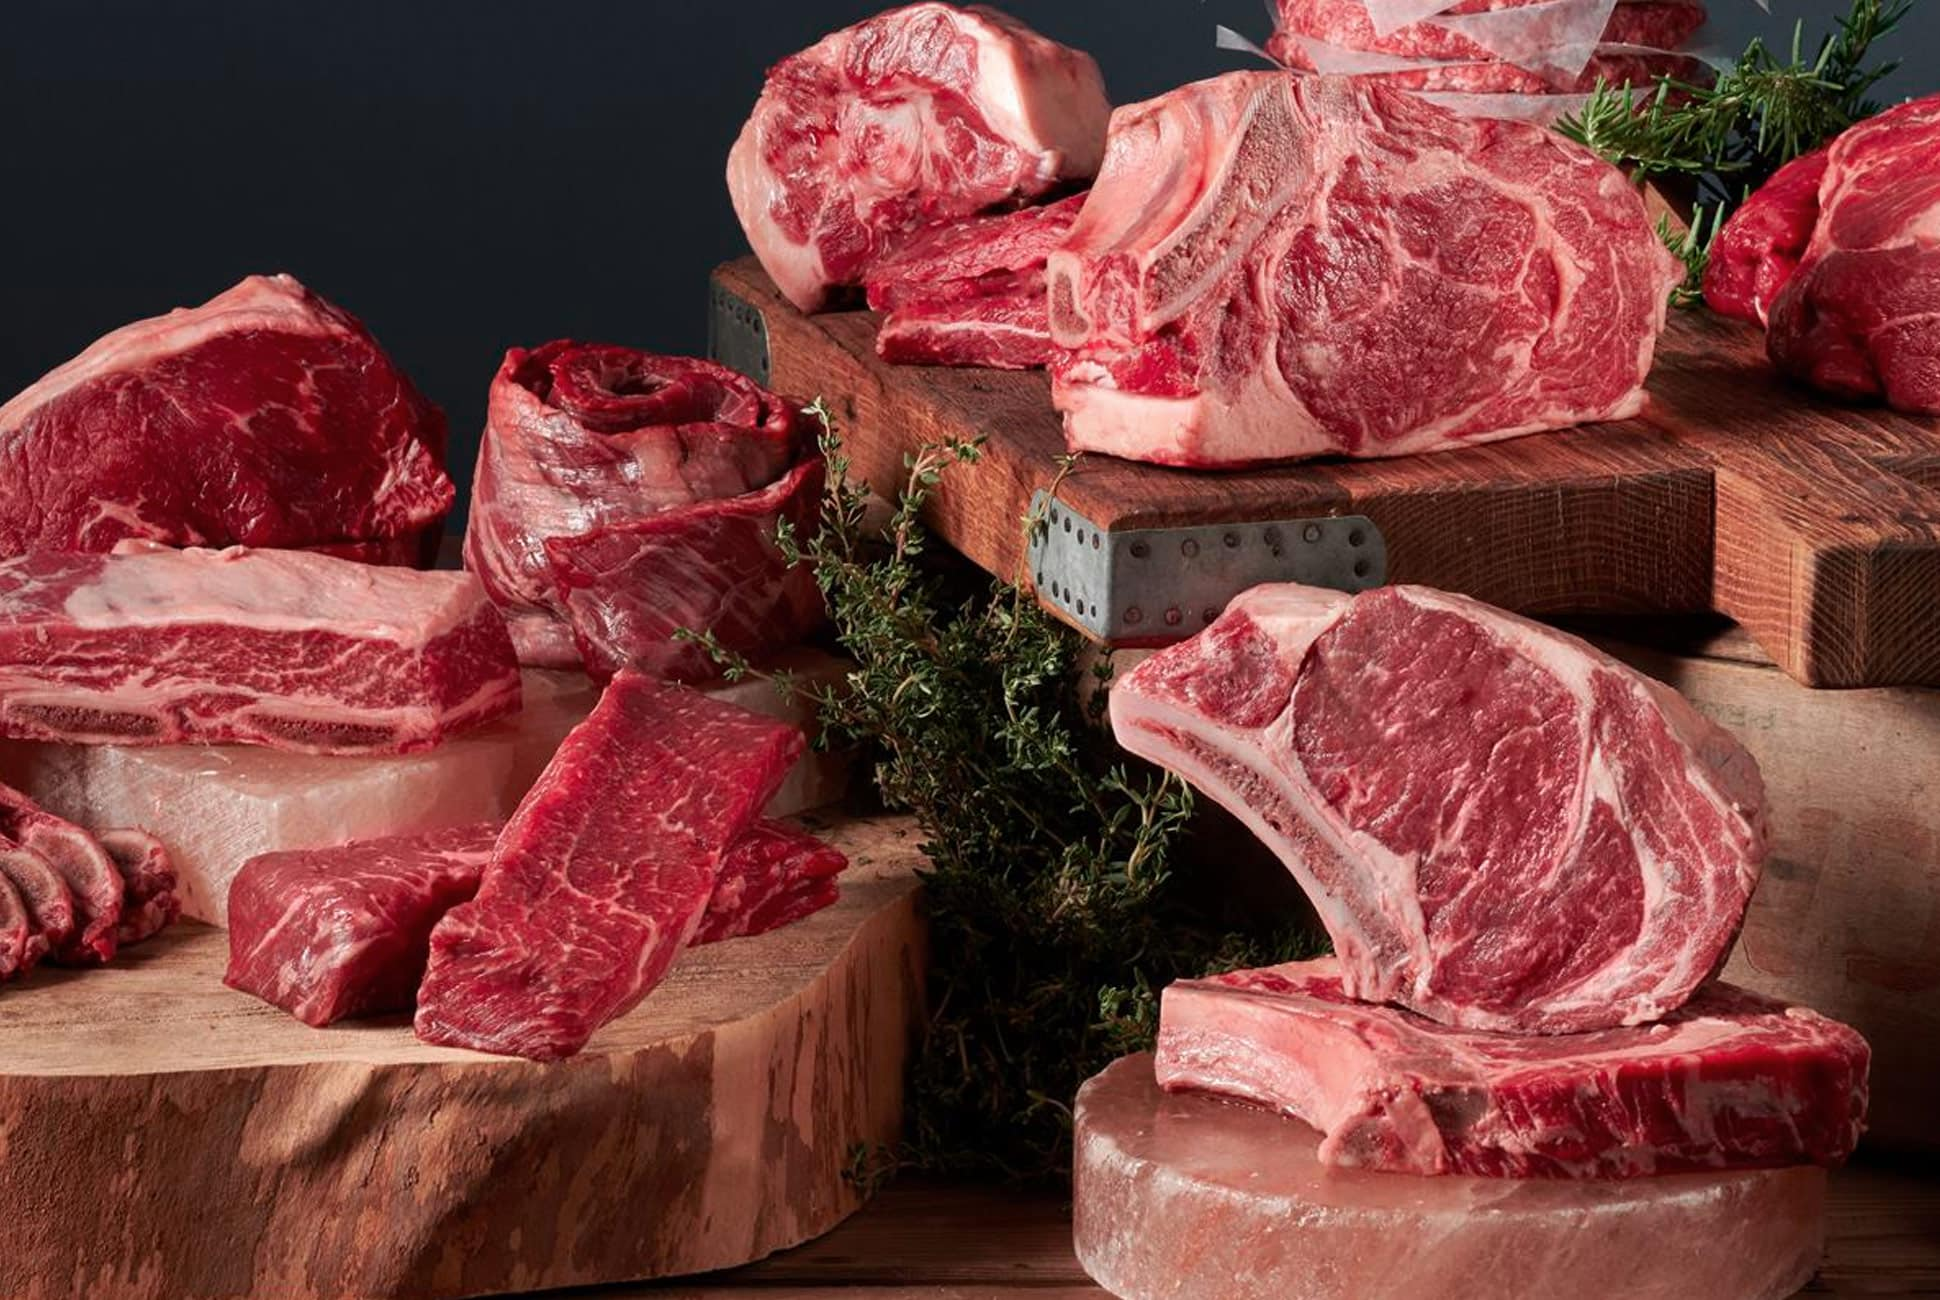 Namibia becomes first African country to export red meat to U.S.